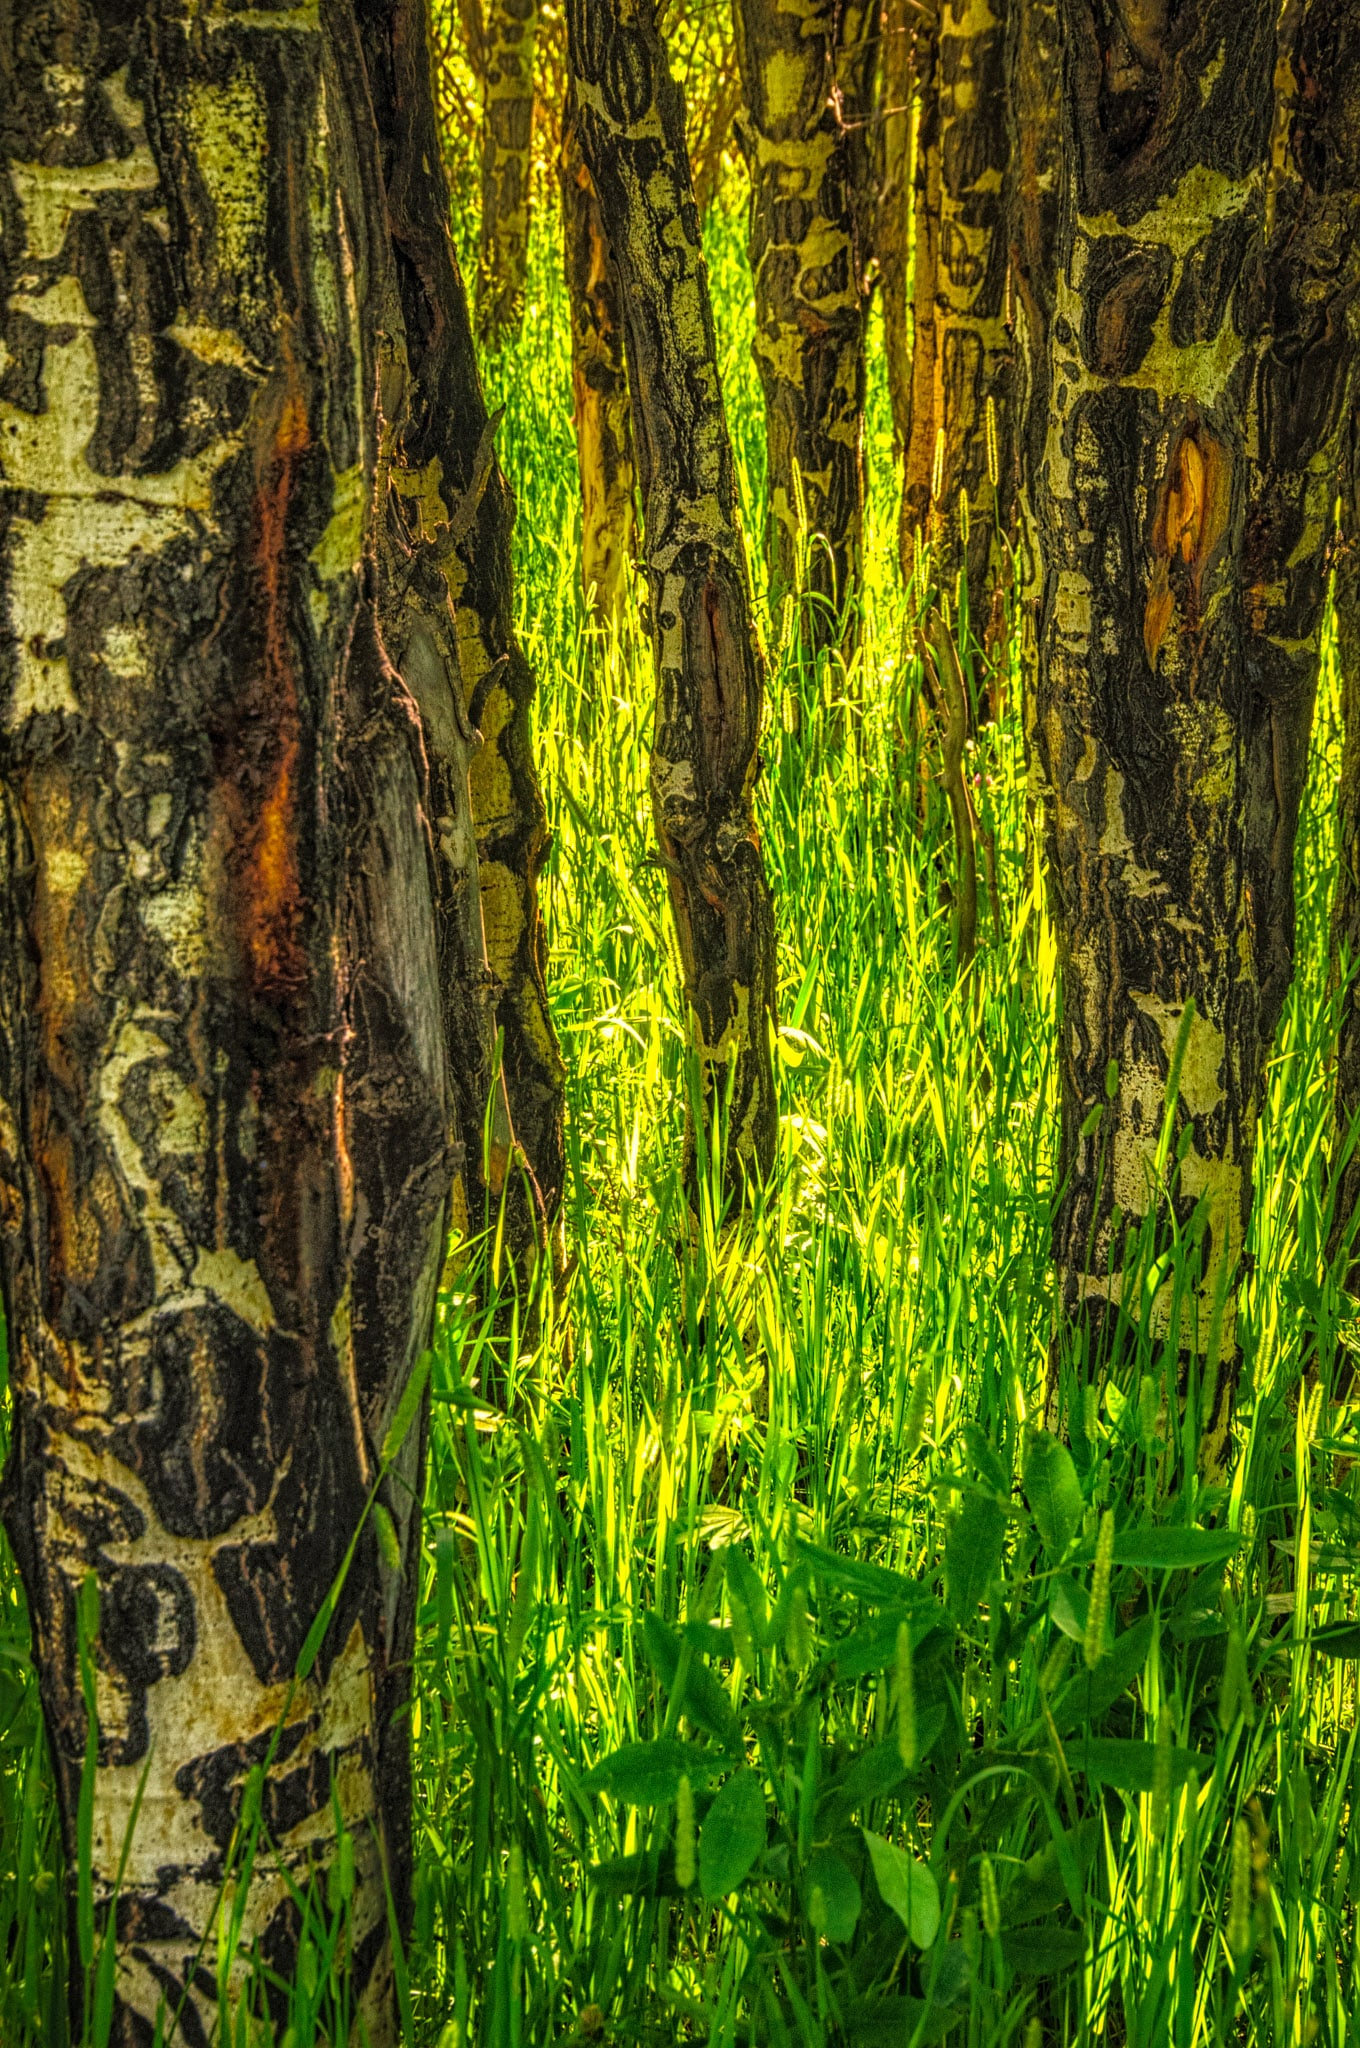 Trunks of an Aspen Grove in the Upper Beaver Meadows area of Rocky Mountain National Park.